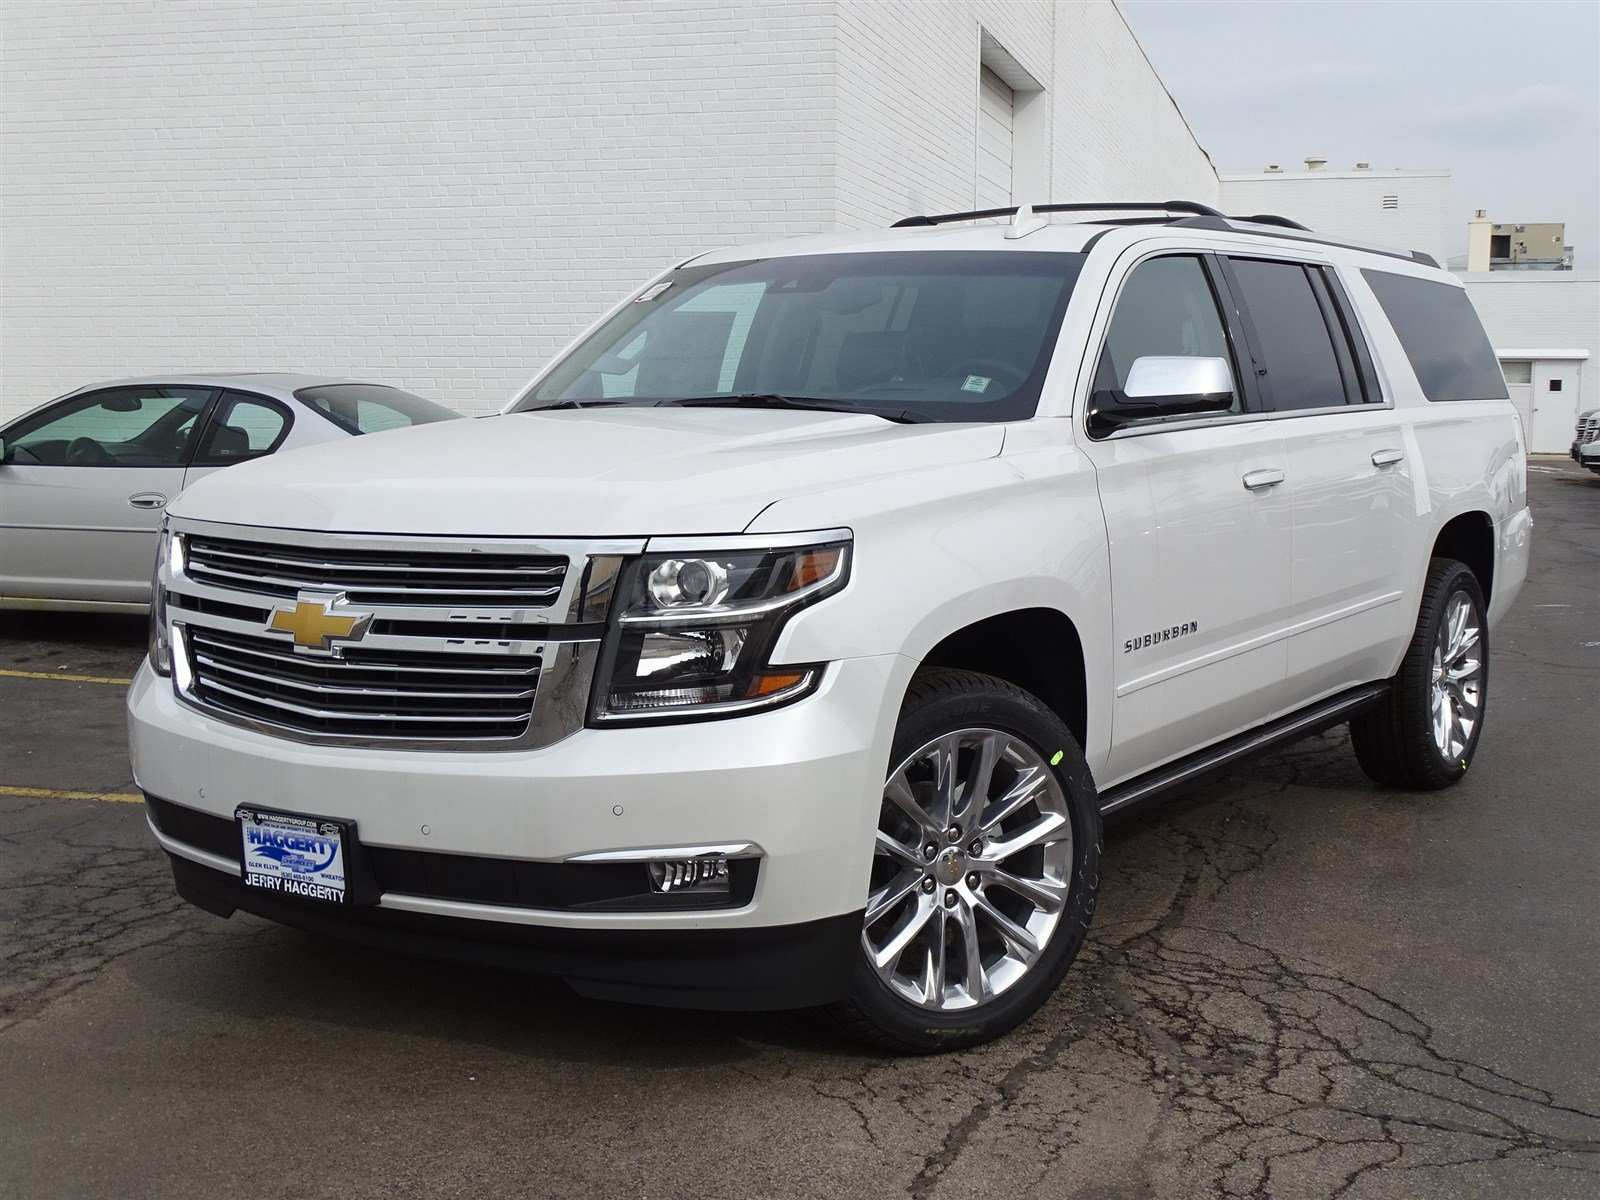 14 All New 2019 Chevrolet Suburban Price Design And Review